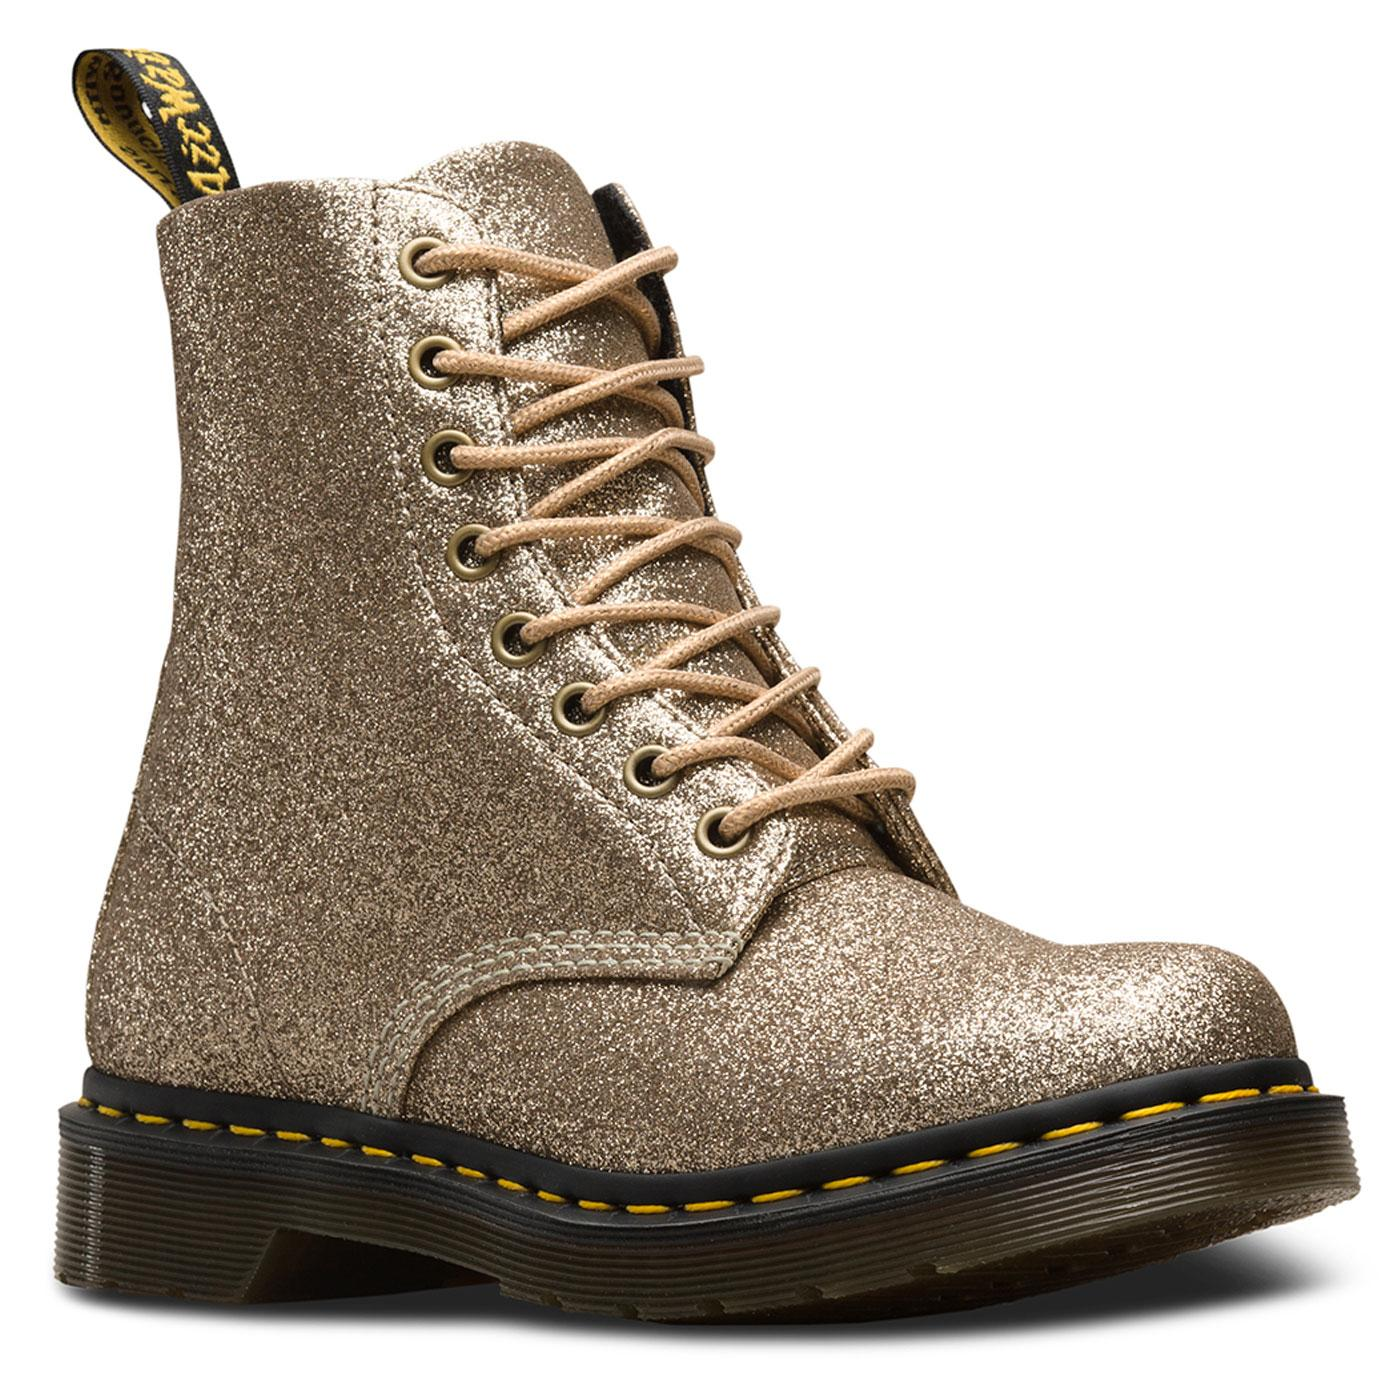 Pascal DR MARTENS 1460 Boots in Pale Gold Glitter